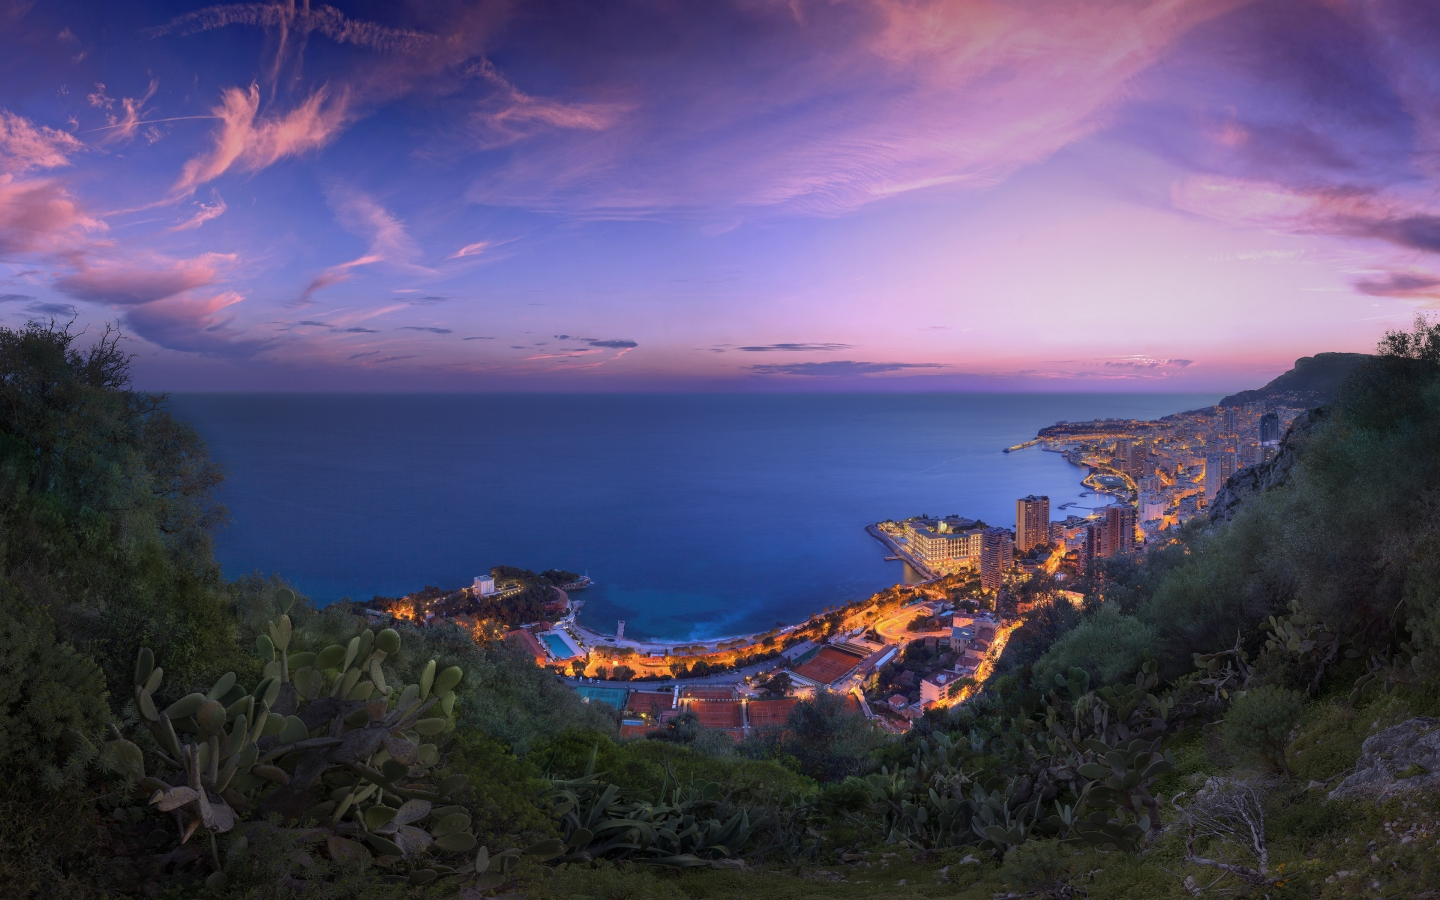 Monaco Winter Clouds Panorama for 1440 x 900 widescreen resolution